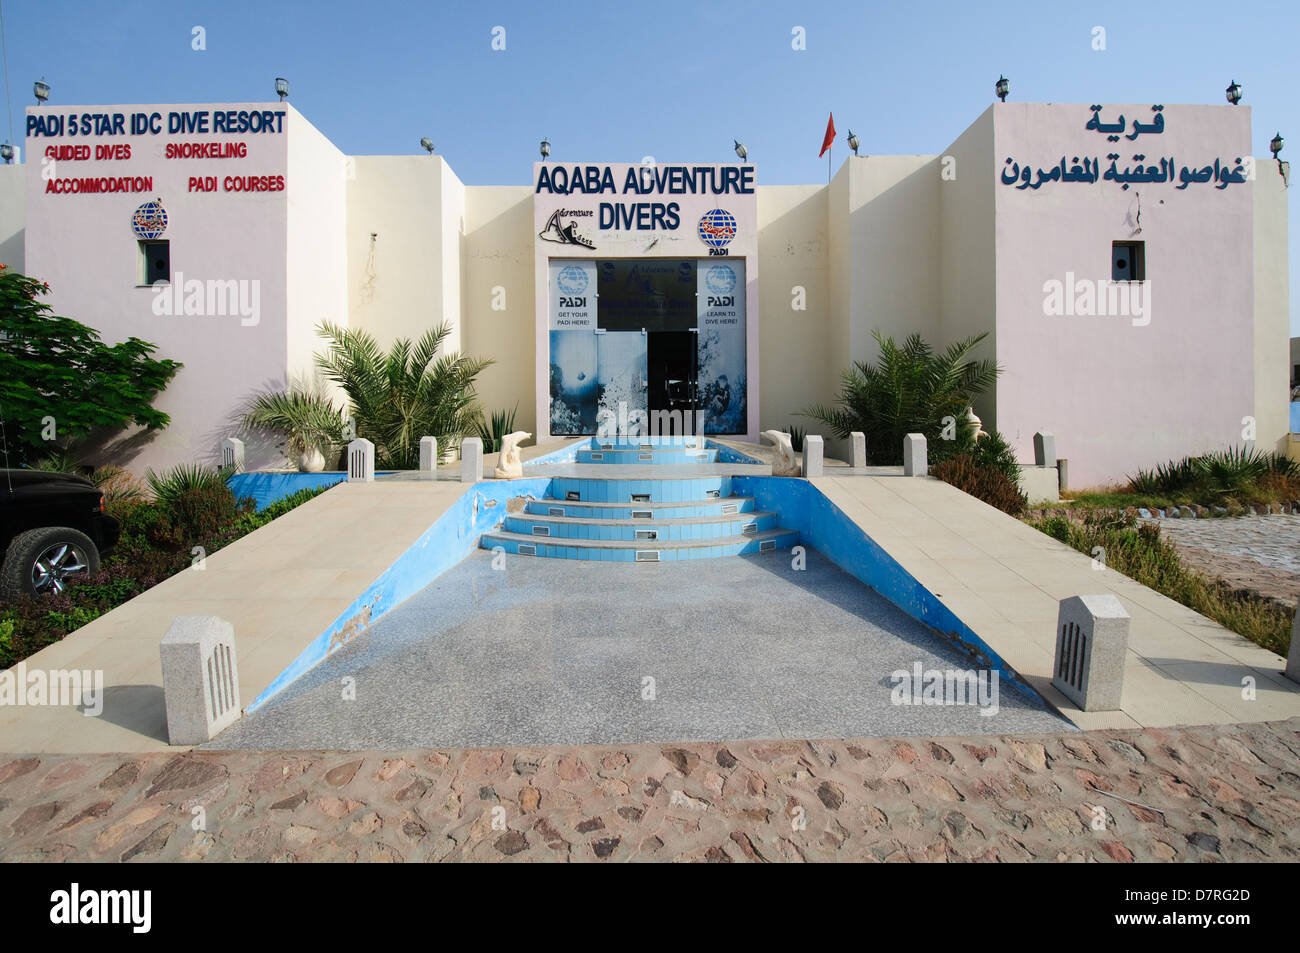 Diving Club, Aqaba, Jordan - Stock Image